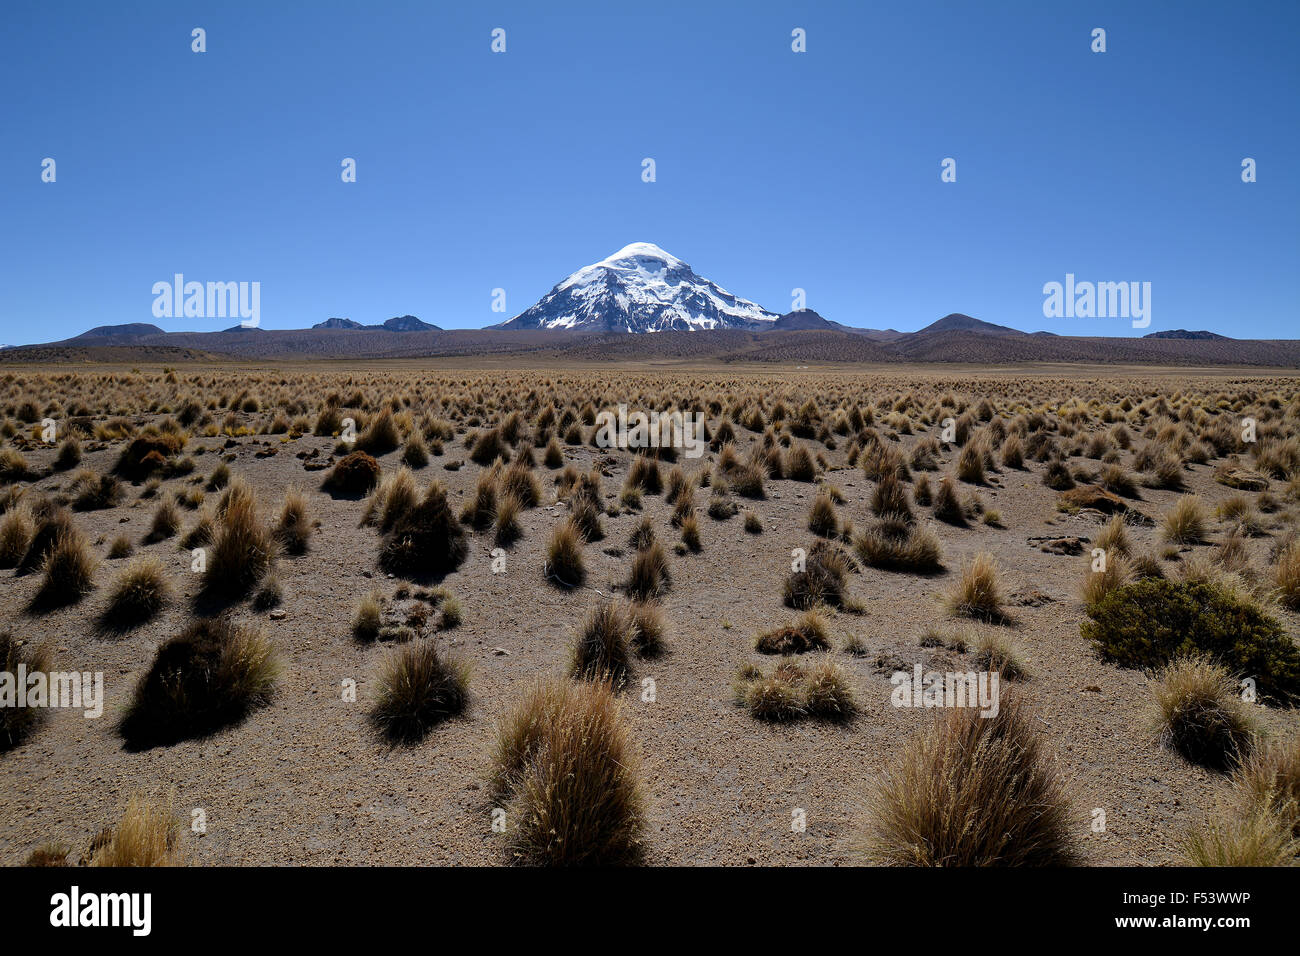 Salaam volcano with ichu grass (Stipa ichu) in Sajama National Park, Altiplano, border to Bolivia, Chile - Stock Image